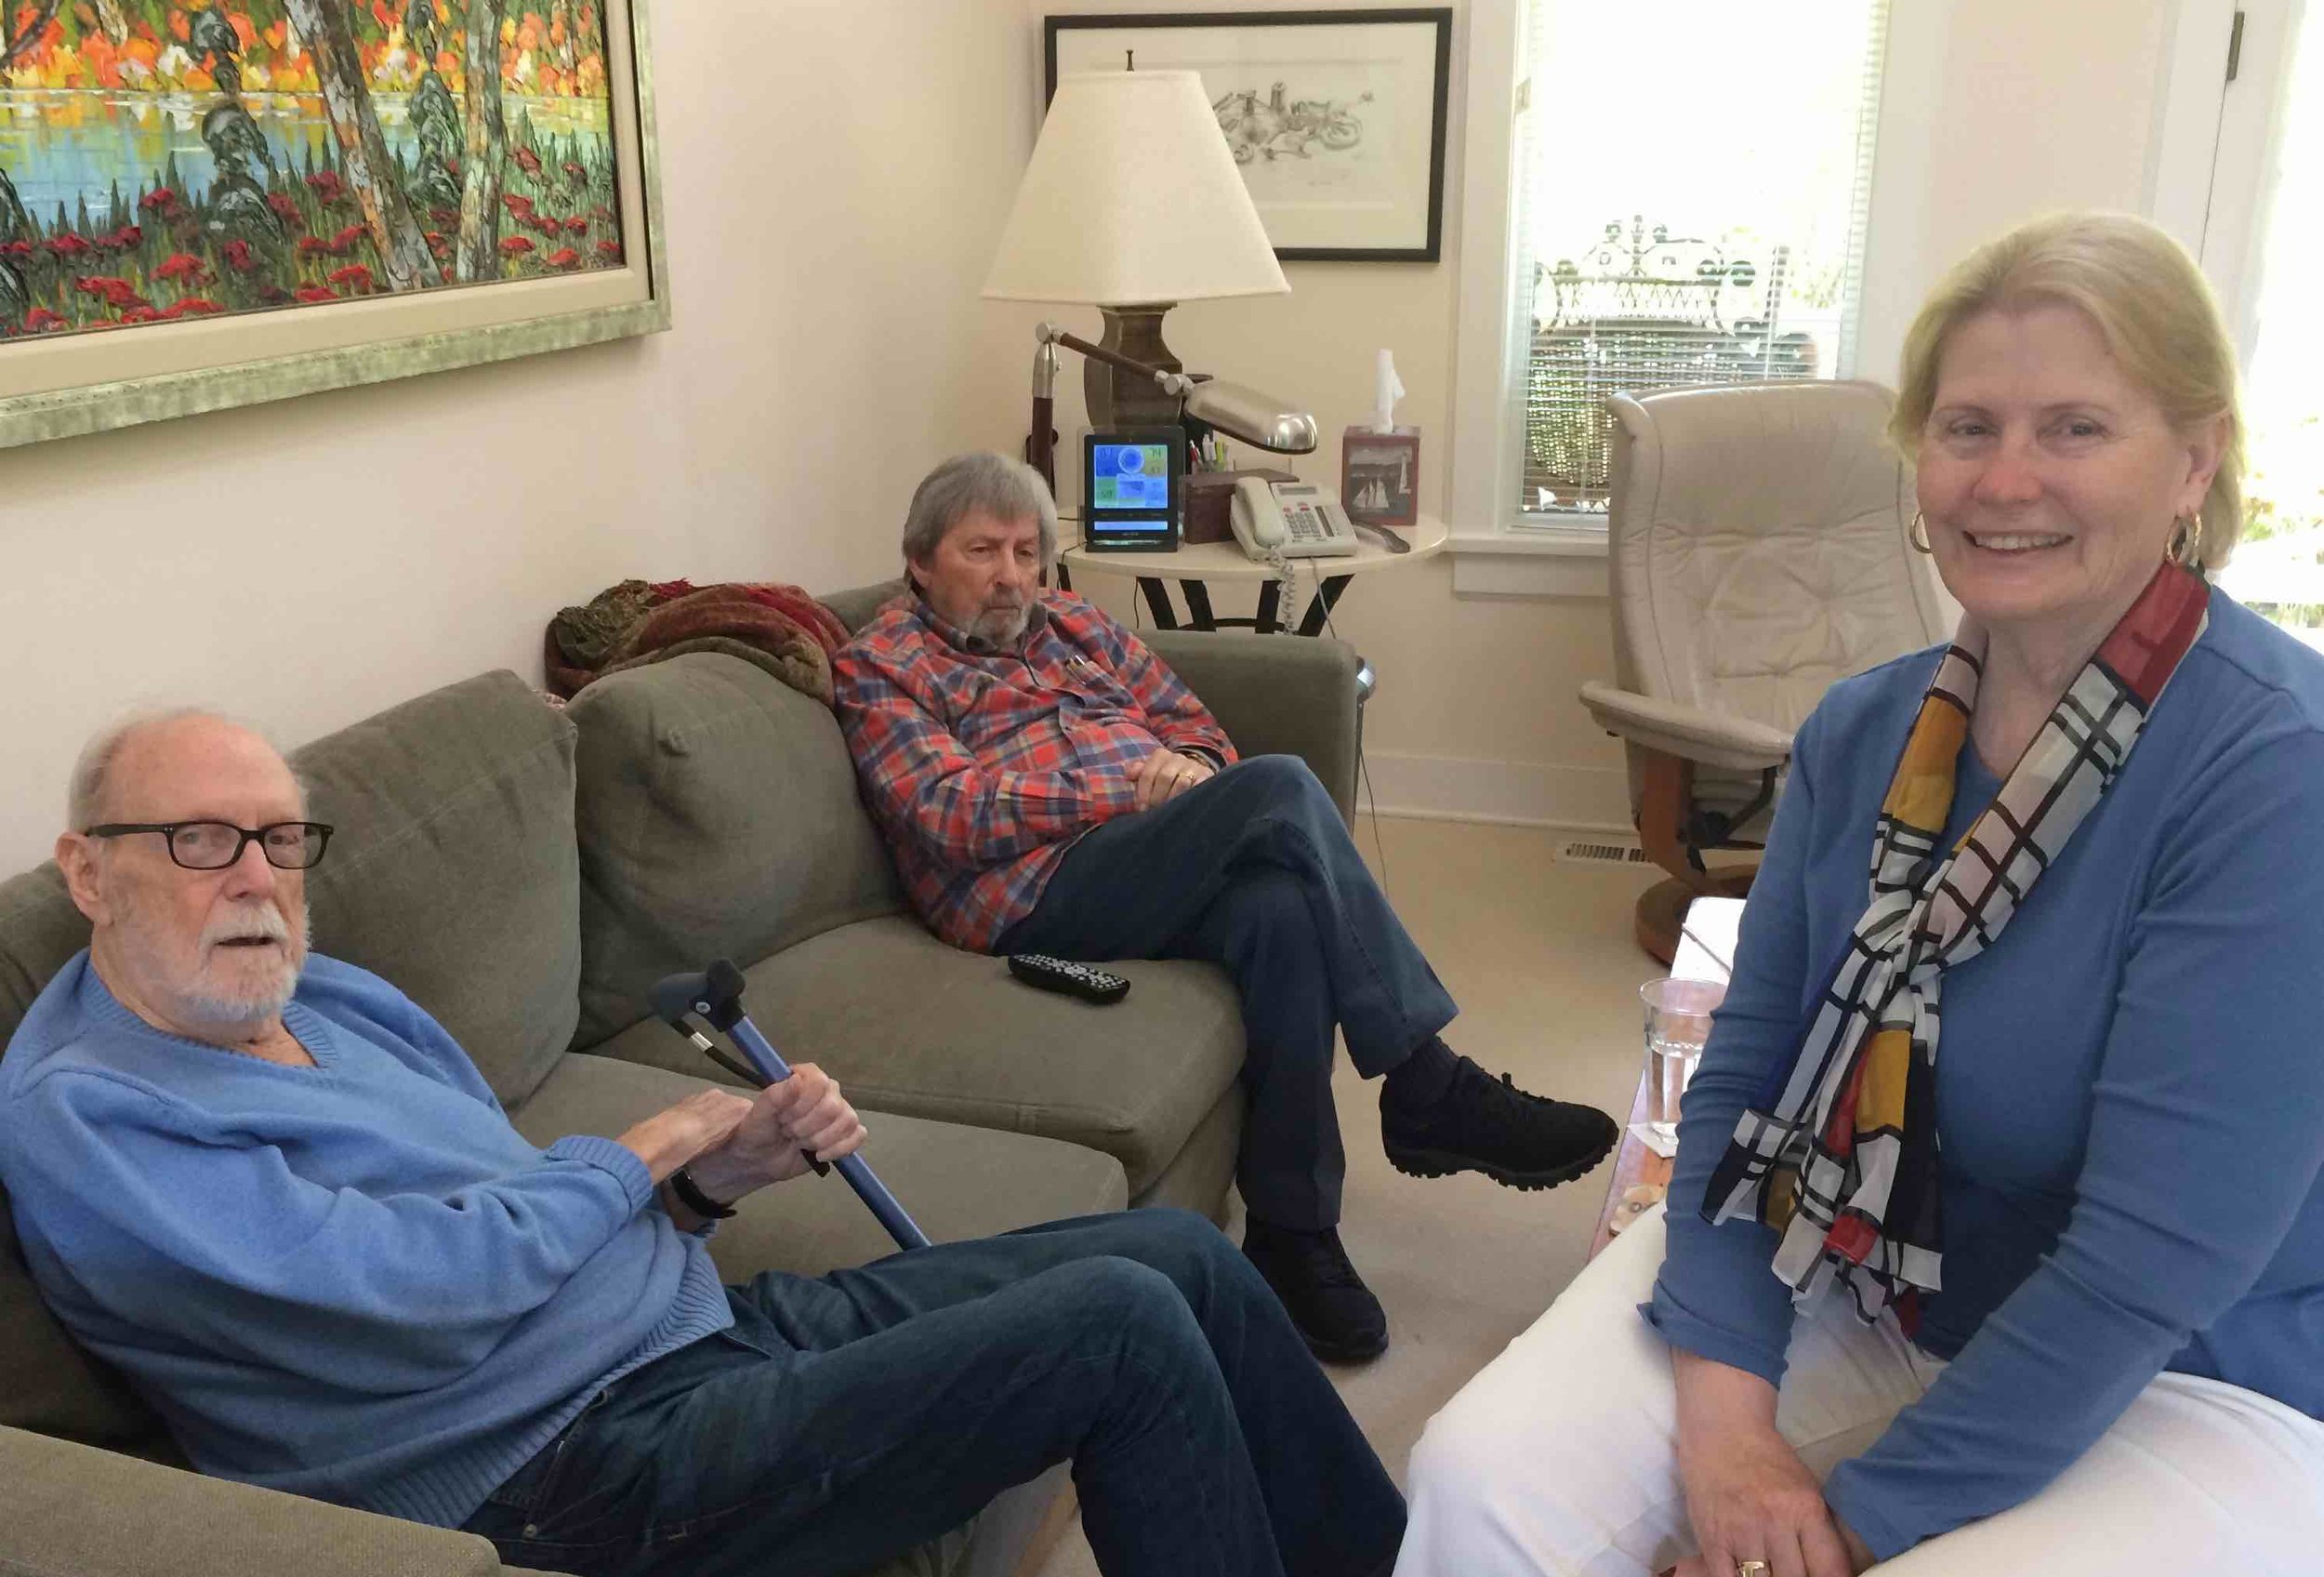 Former Hollywood film music editor Ken Wannberg with pianist/composer/conductor Artie Kane and film music copyist JoAnn Kane - on Whidbey Island, WA